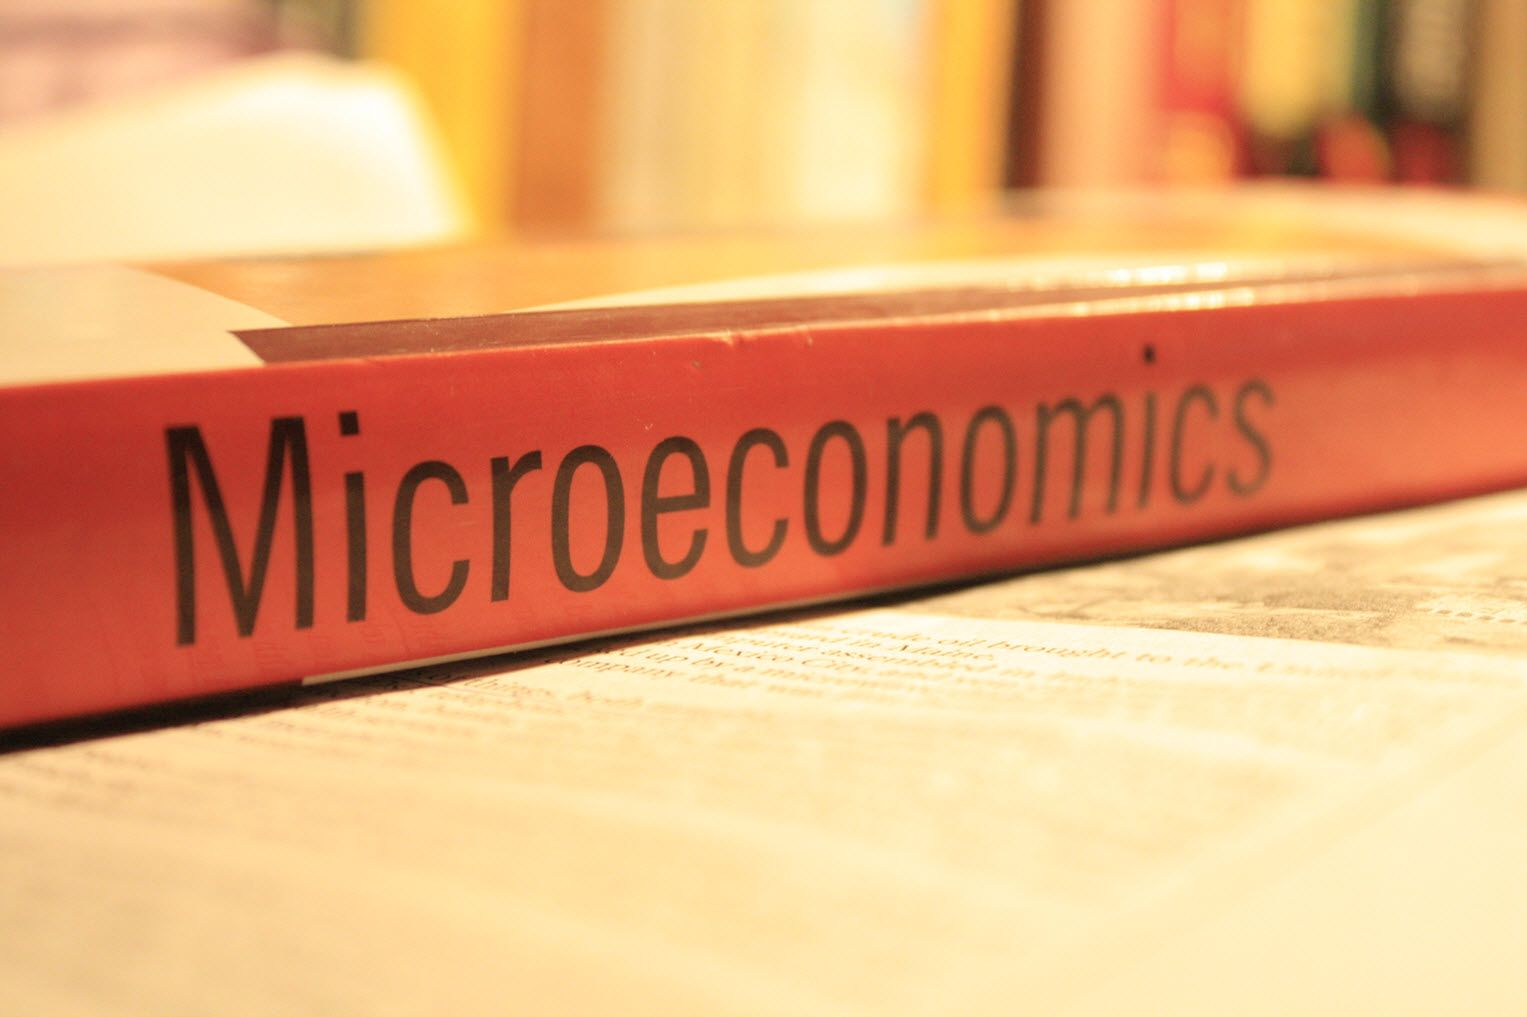 Get Microeconomics Assignment Help in UK, USA, Malaysia, etc, by Economics Experts of Instant Assignment Help. We offer Microeconomics Assignment Writing Help to the students at best price which helps them in scoring topmost grades in their academics. Contact us now to get upto 50% discount on your assignment order.